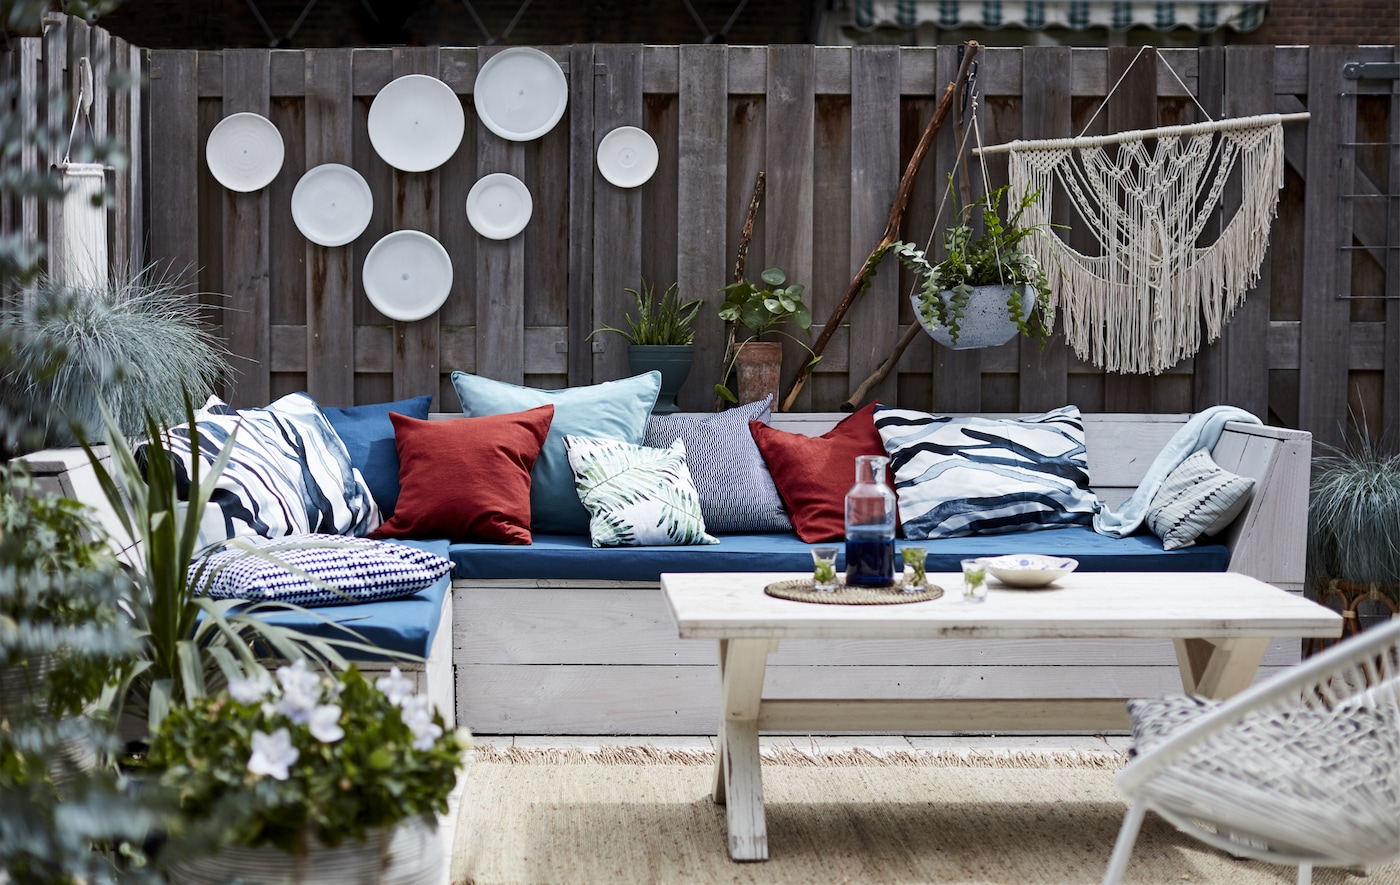 An outdoor living room with cushions and hanging plants.